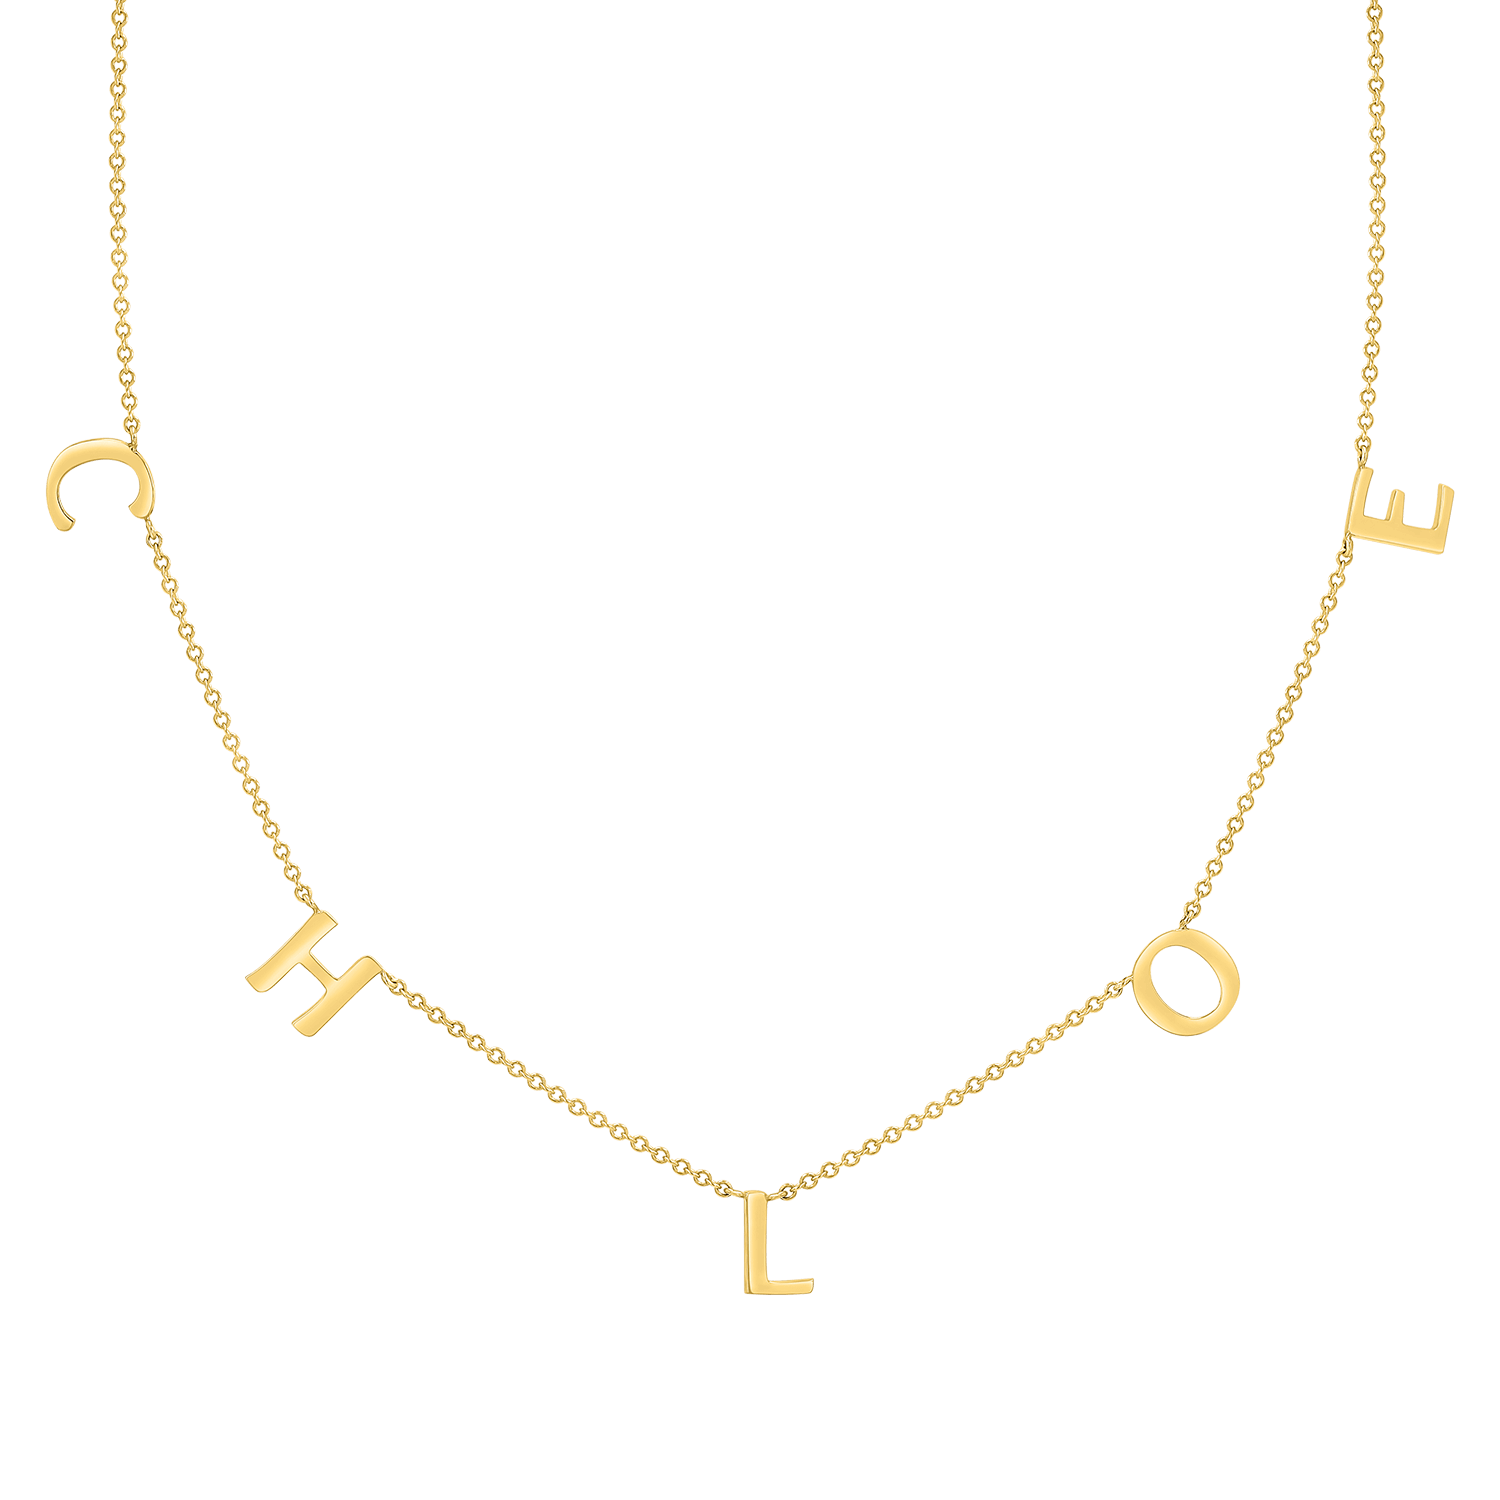 Spaced Letter Necklace